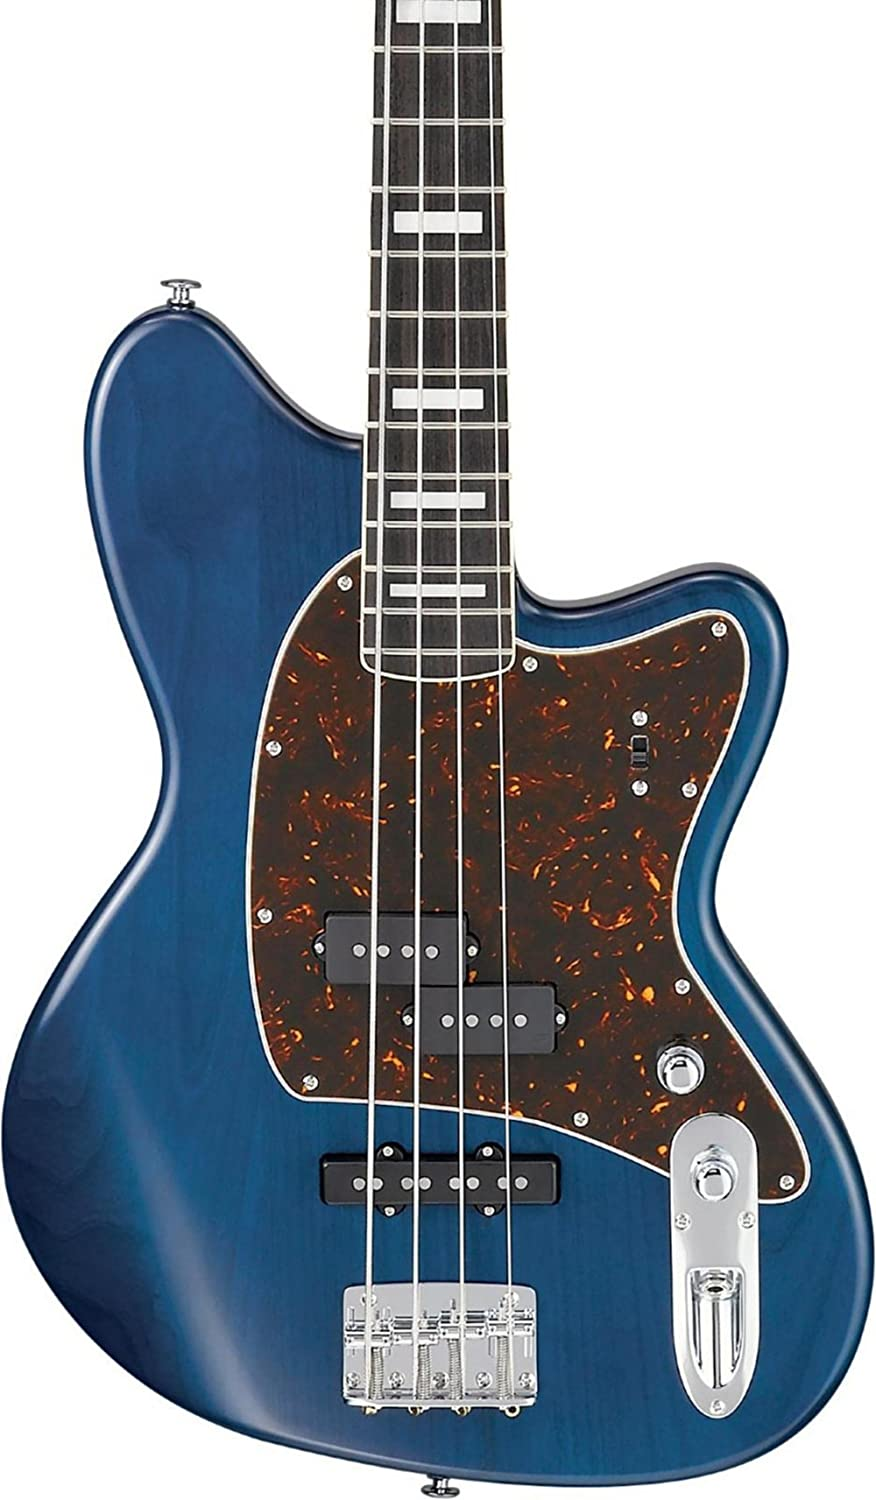 Ibanez TMB2000 Talman Prestige Electric Bass Guitar Blue Zilcon